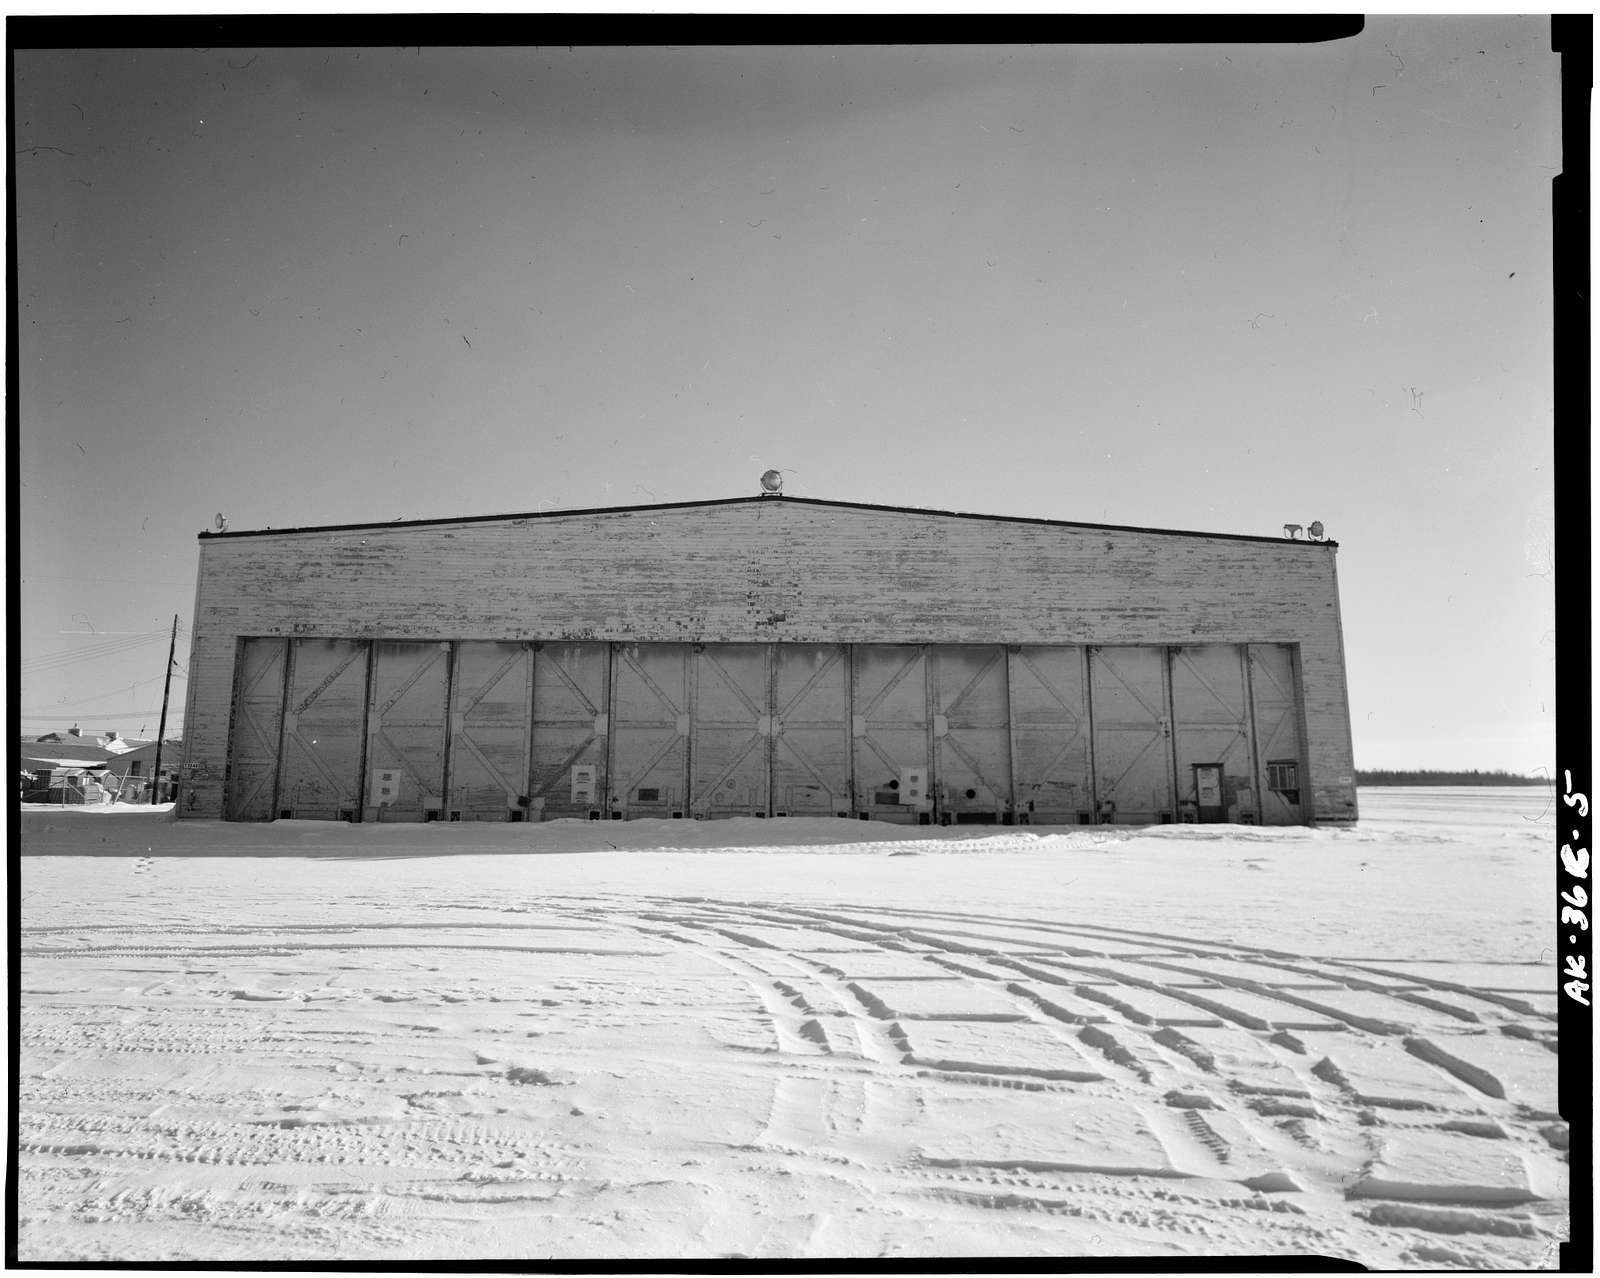 Ladd Field, Kodiak T-Hangar, Fort Wainwright, Fairbanks, Fairbanks North Star Borough, AK